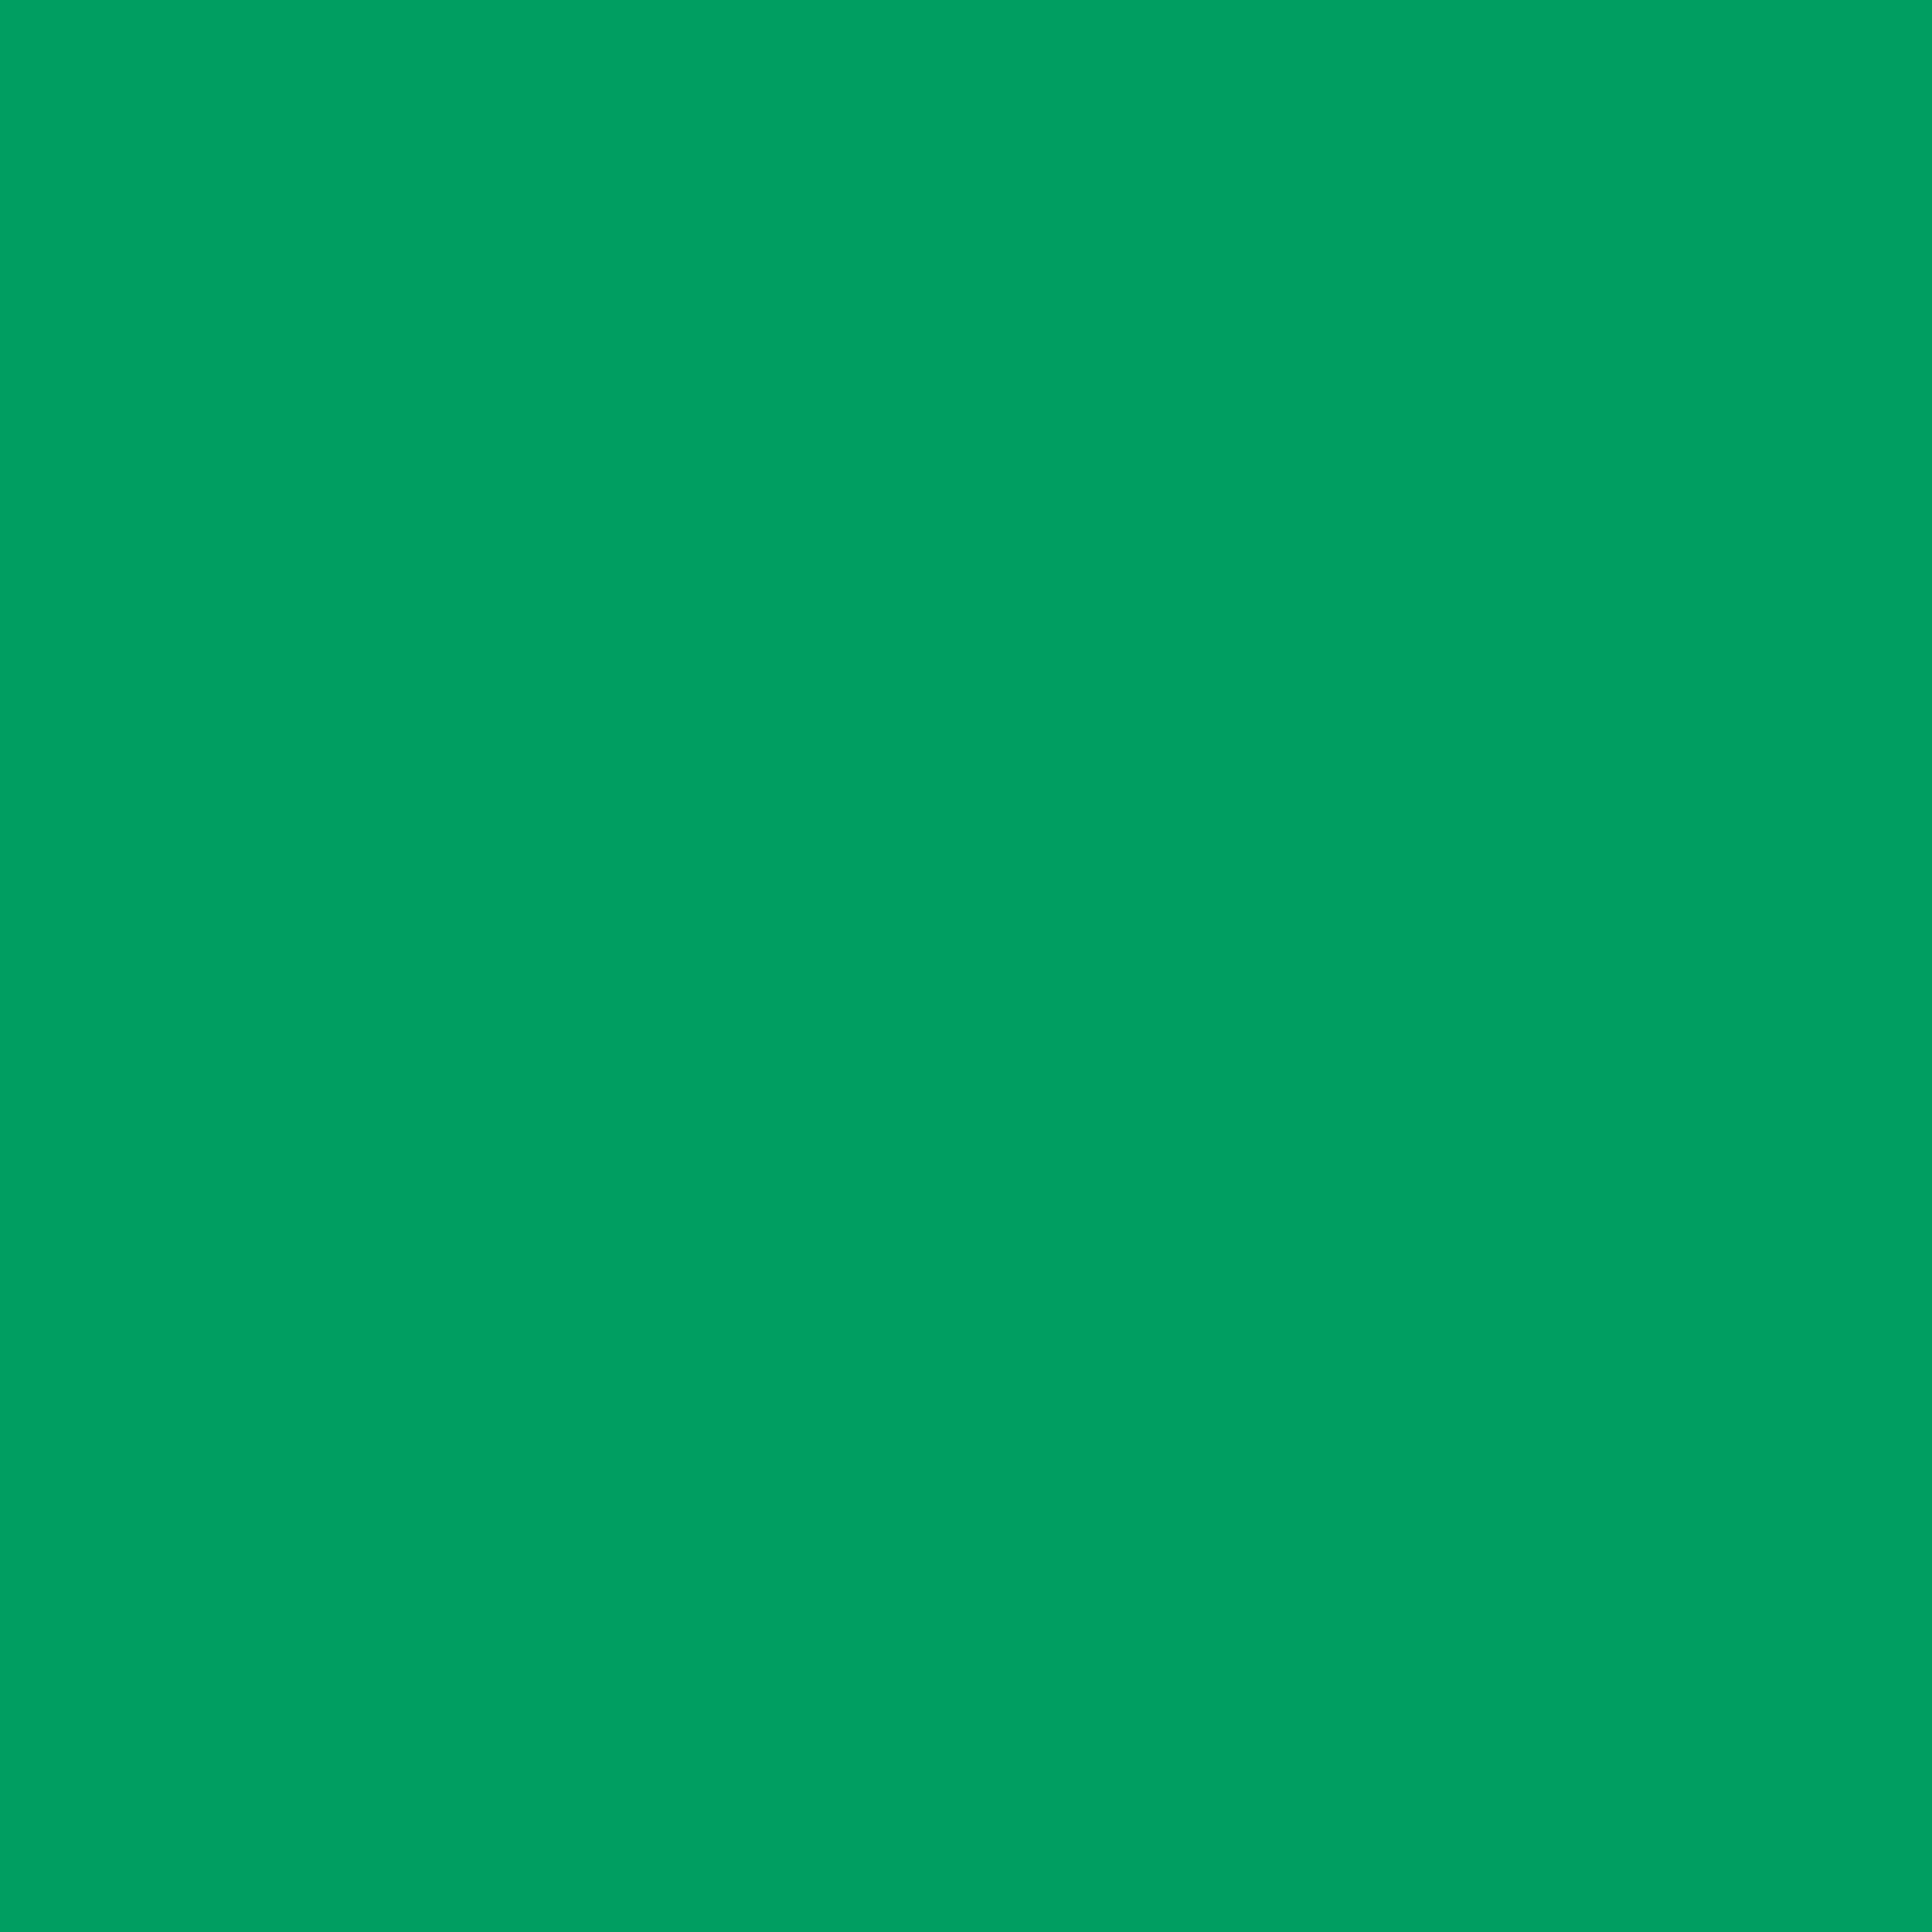 Privacy Policy >> 2048x2048 Shamrock Green Solid Color Background